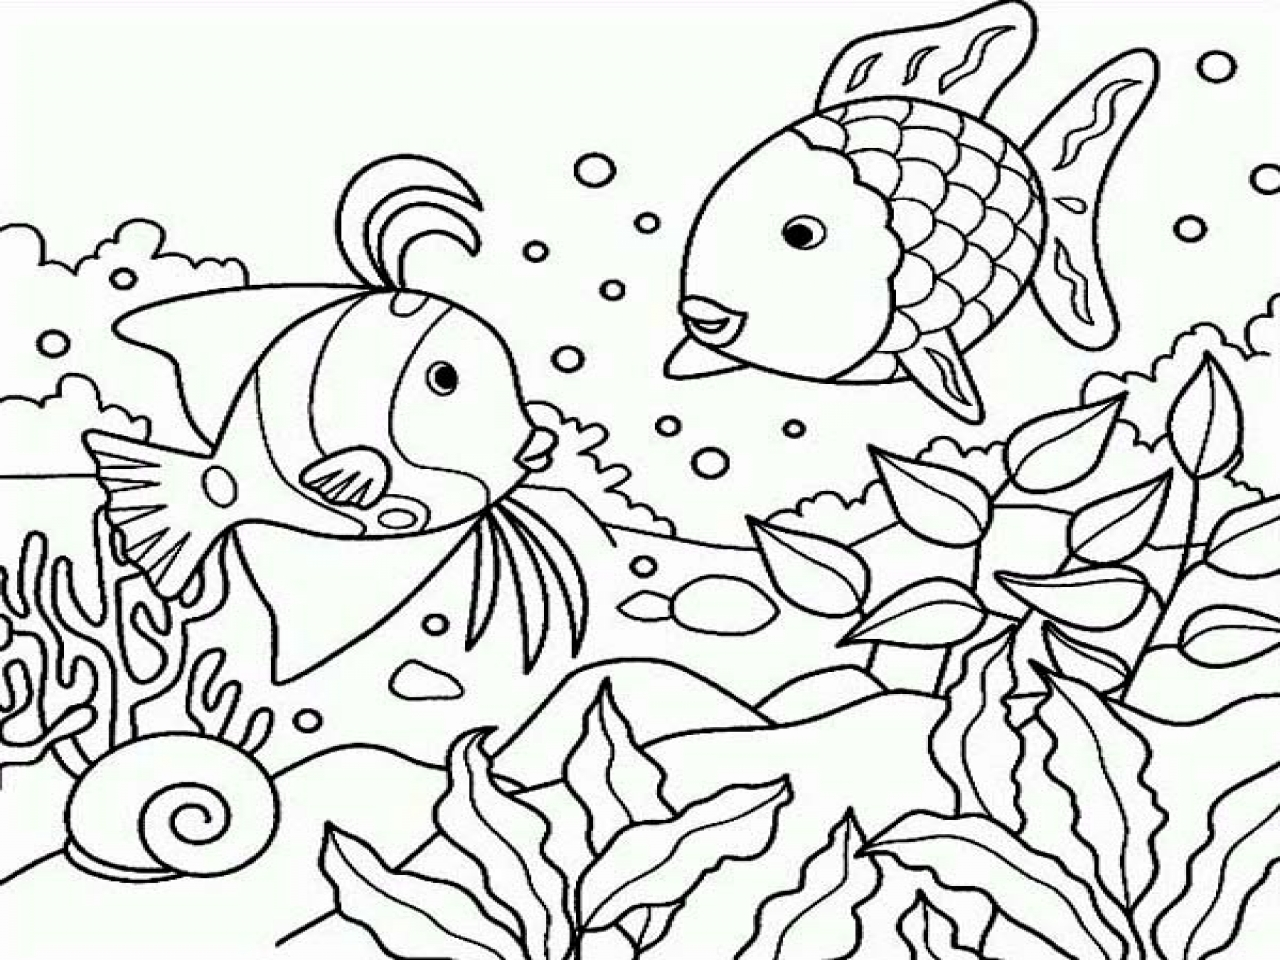 1280x960 Under The Sea Coloring Pages Mayapurjacouture Com In Plans